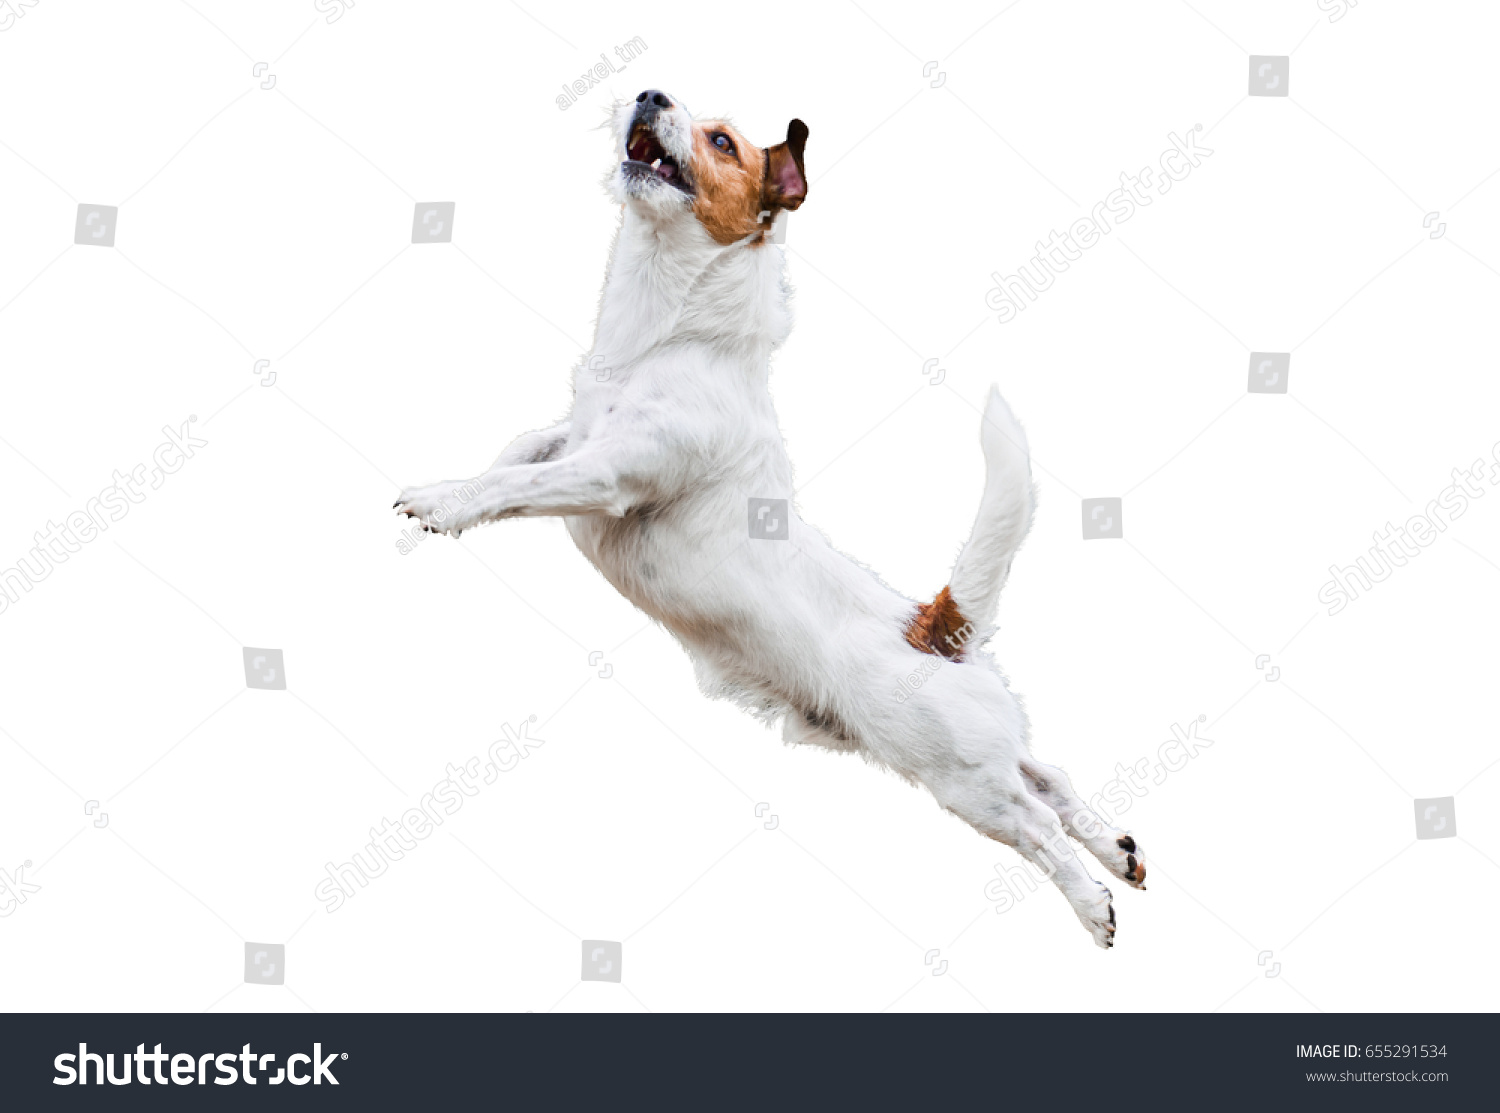 Terrier dog isolated on white jumping and flying high  #655291534